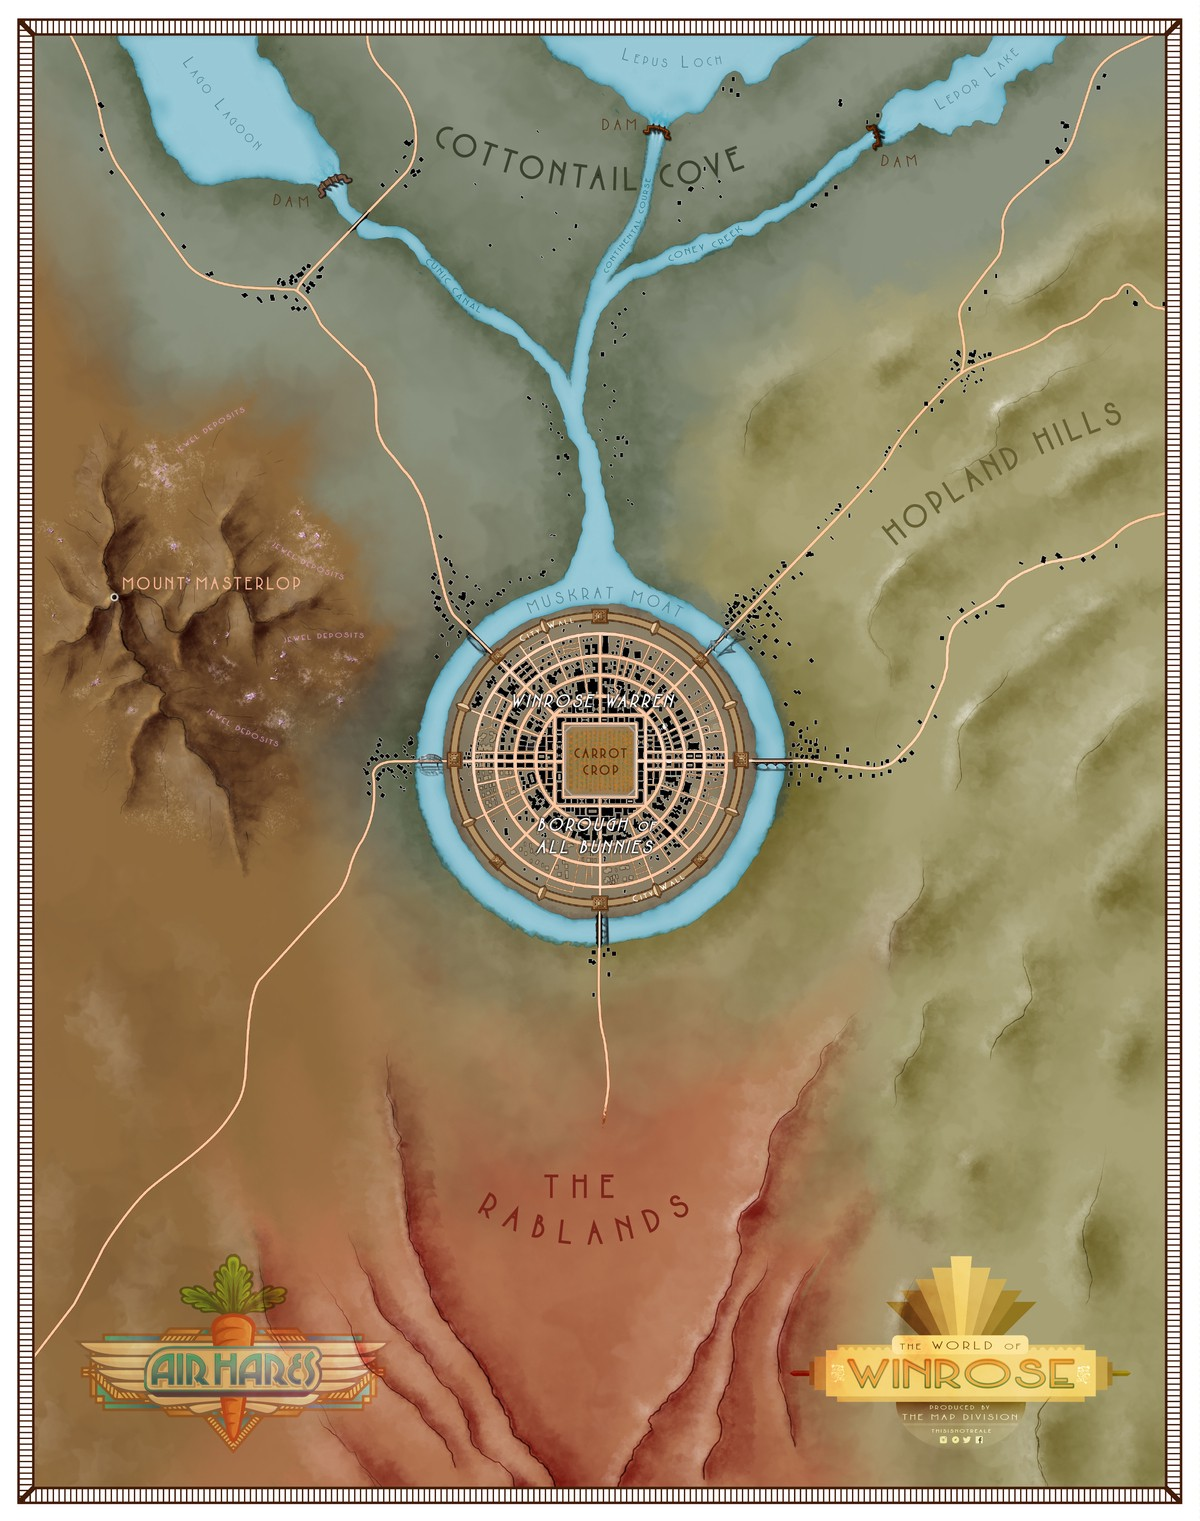 A map of Winrose, where Air Hares is set, showing a metropolis in the center surrounded by rivers, mountains and desert.